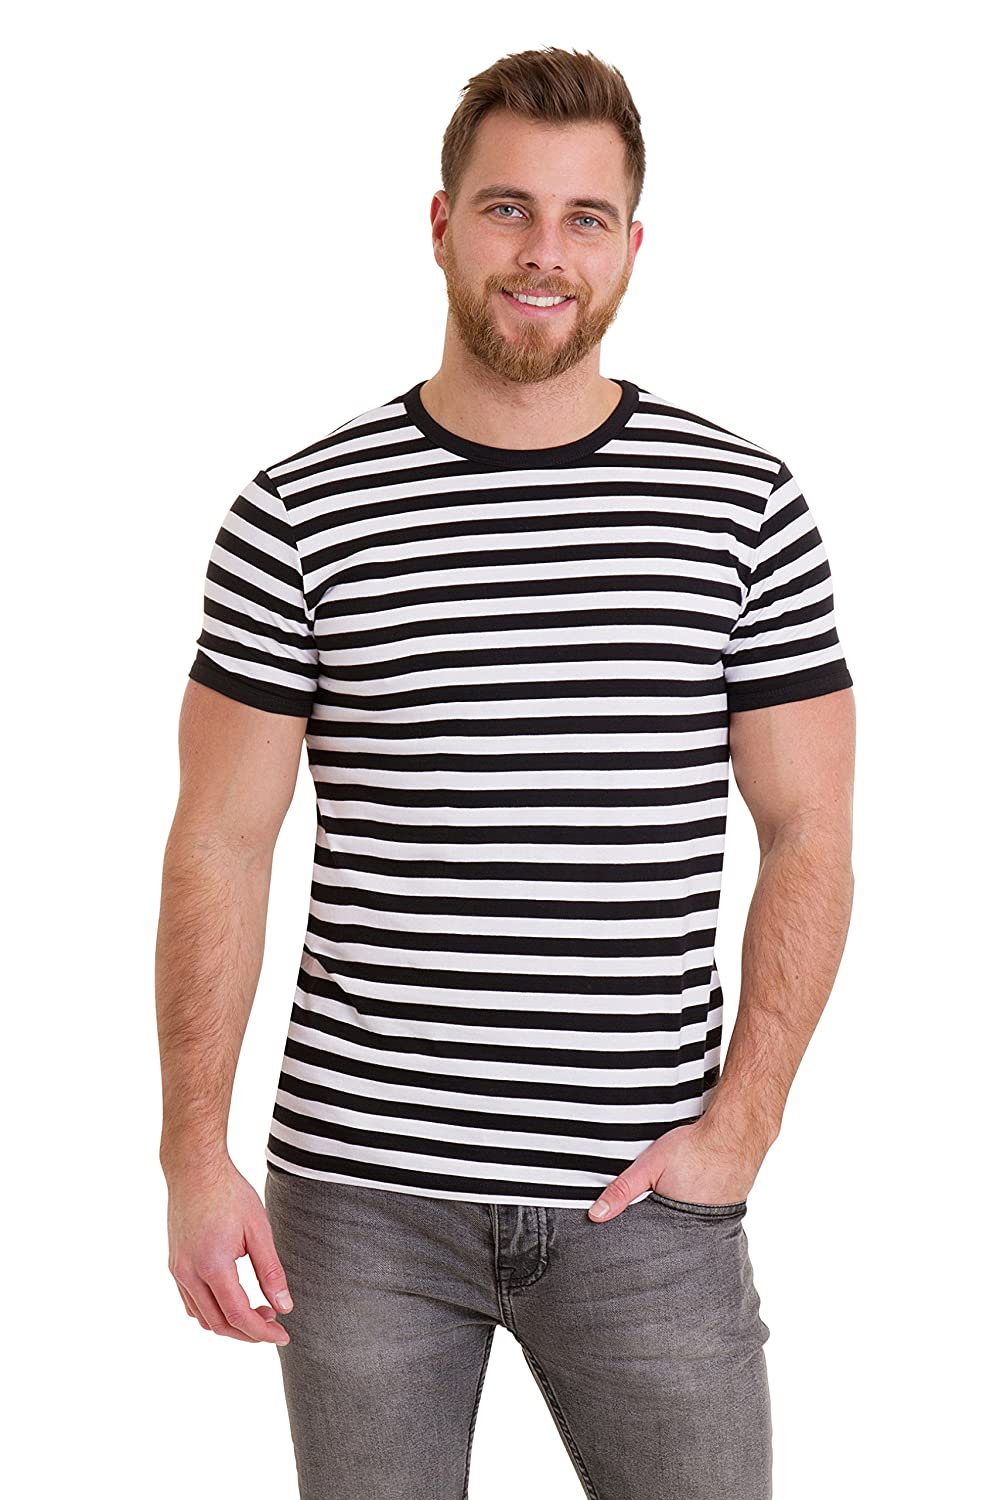 1940s Mens Clothing Run & Fly Mens 60s Retro Black & White Striped Short Sleeve T Shirt $19.95 AT vintagedancer.com